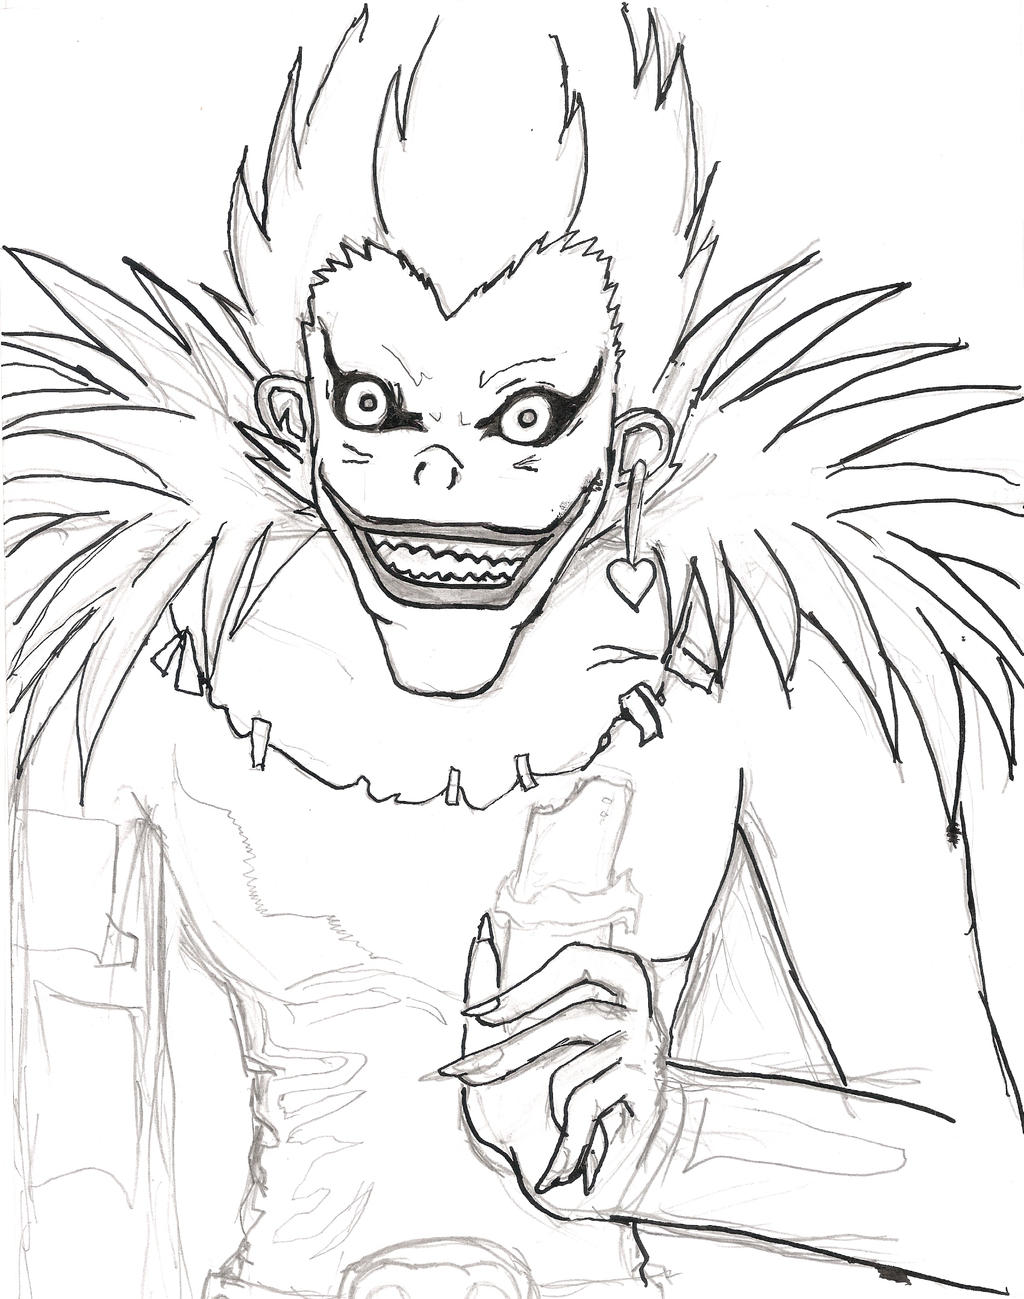 Death note ryuk coloring pages